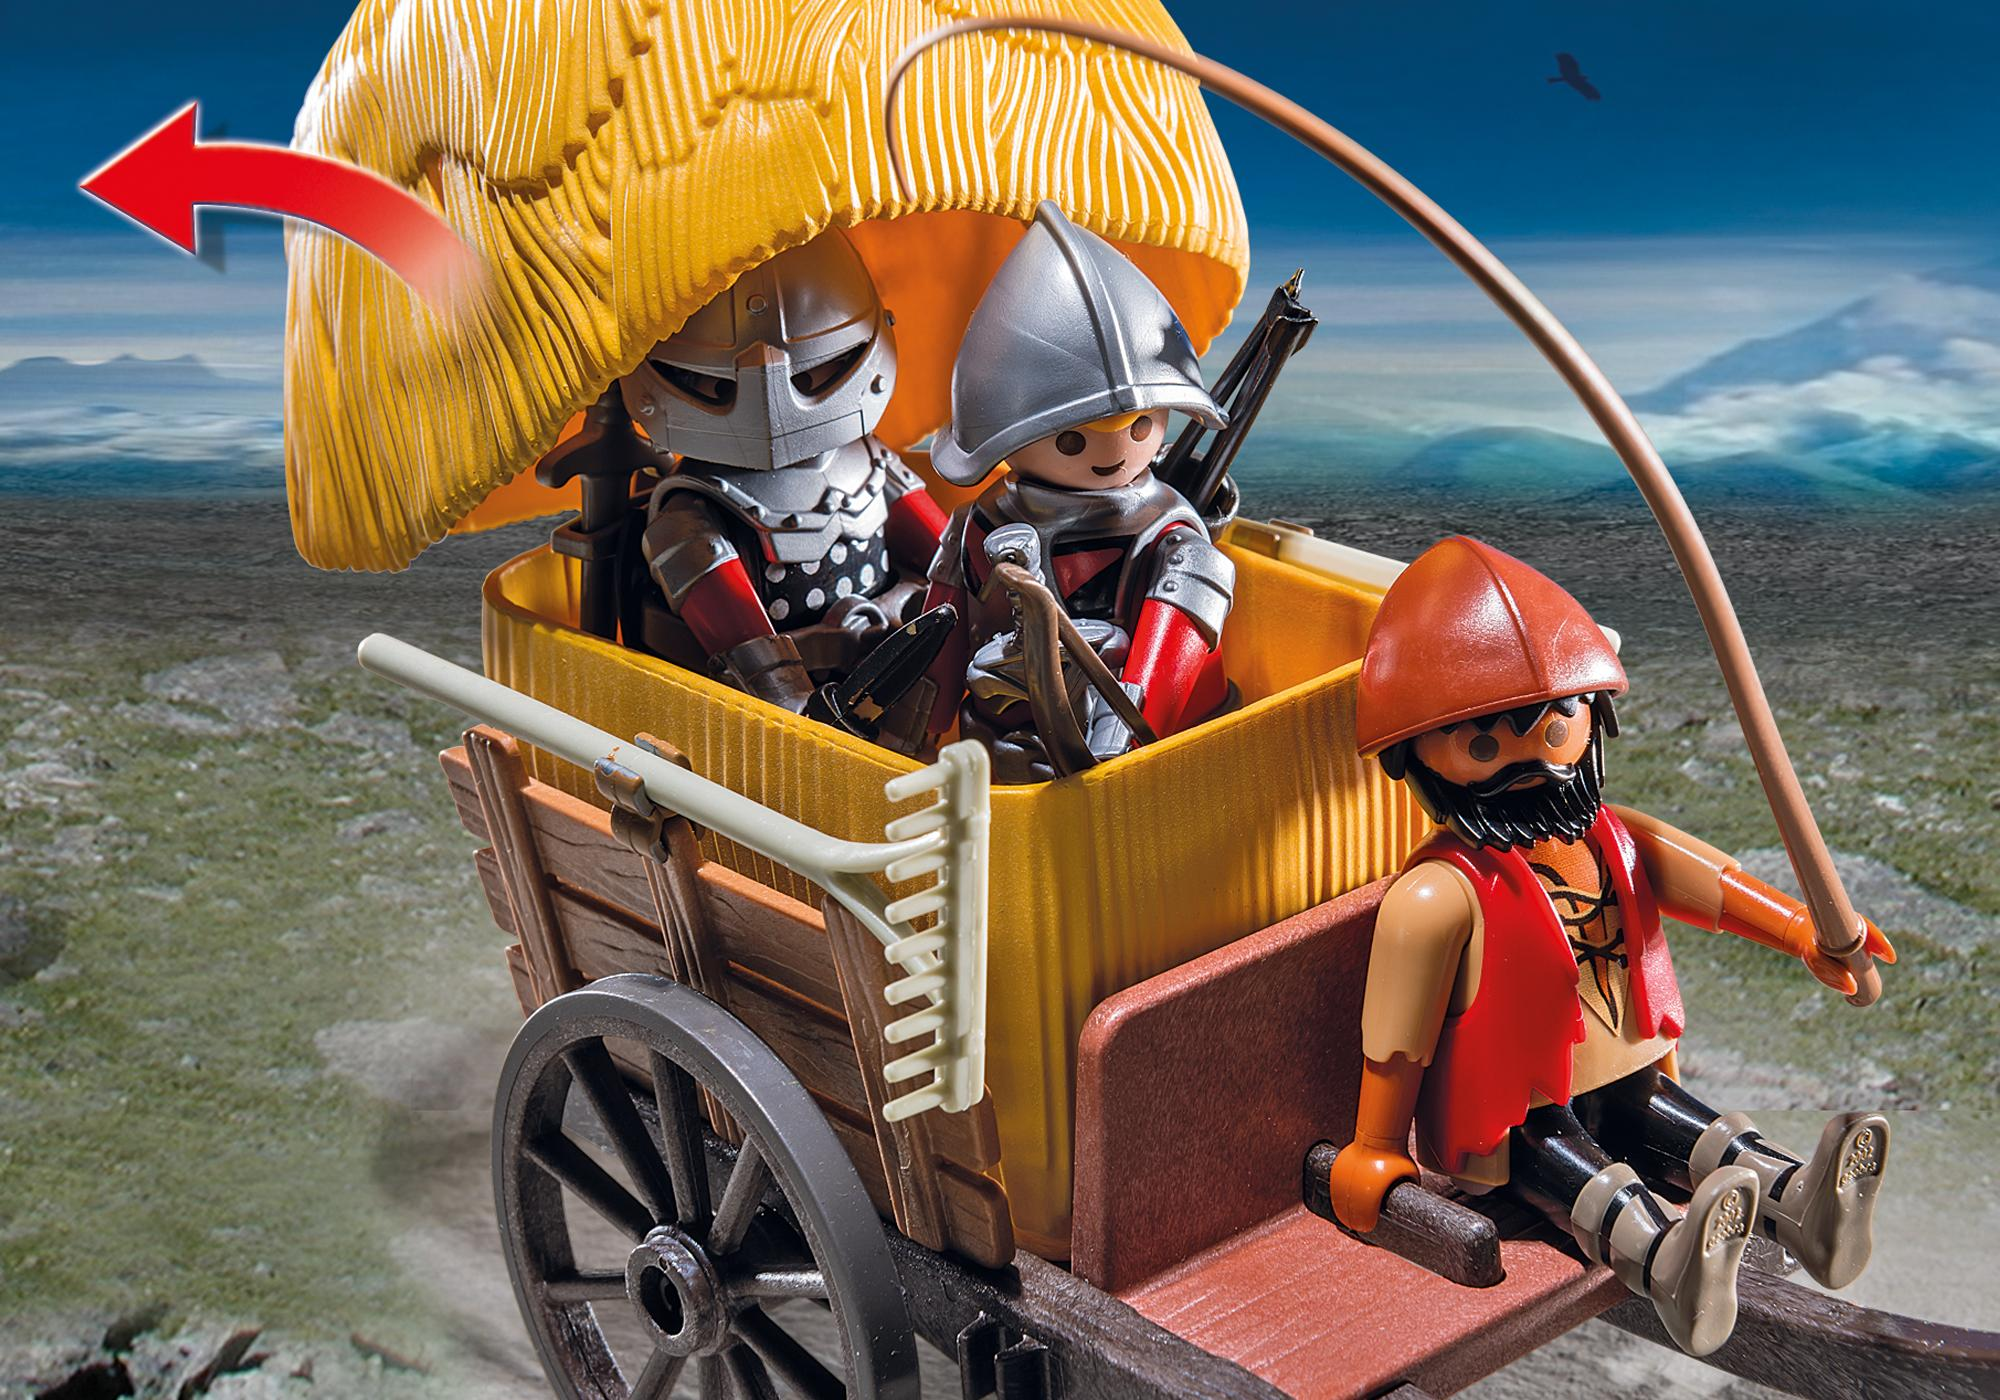 http://media.playmobil.com/i/playmobil/6005_product_extra3/Hawk Knight`s with Camouflage Wagon